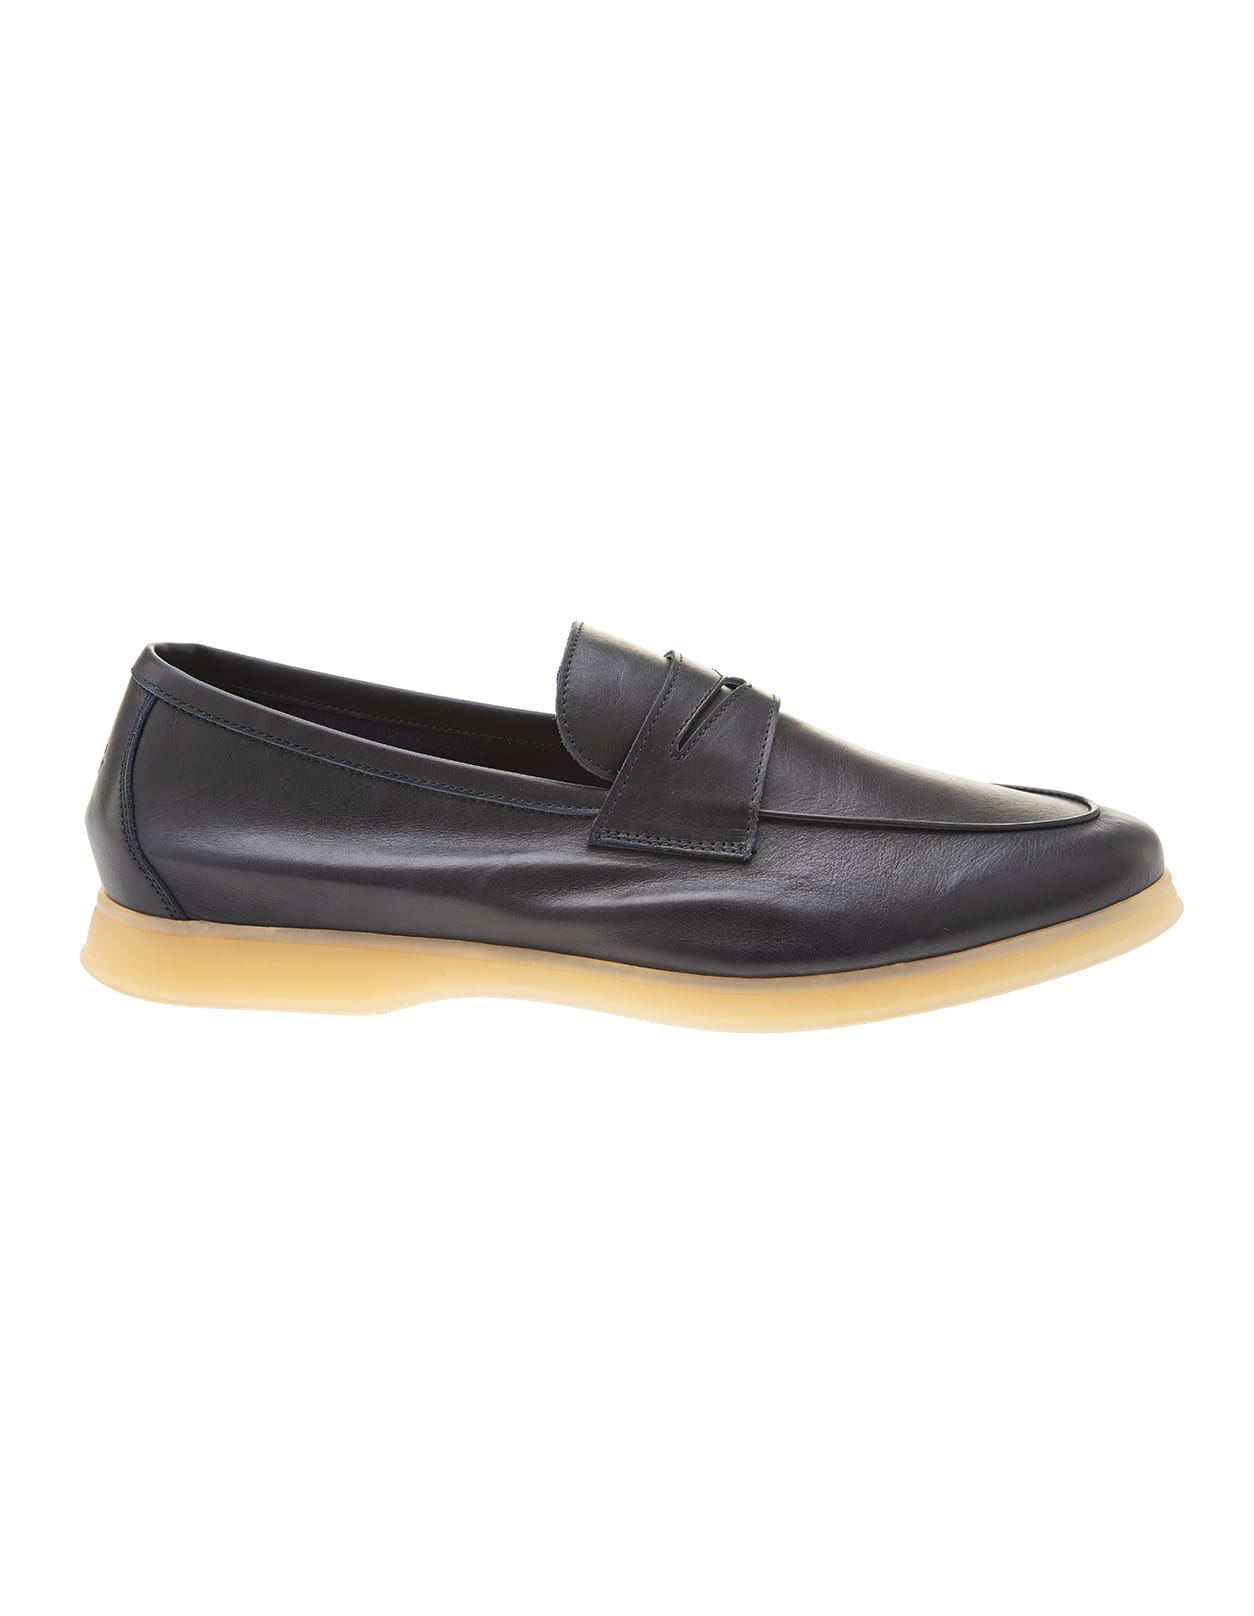 Aquariva Beach Loafer In Dark Blue Leather